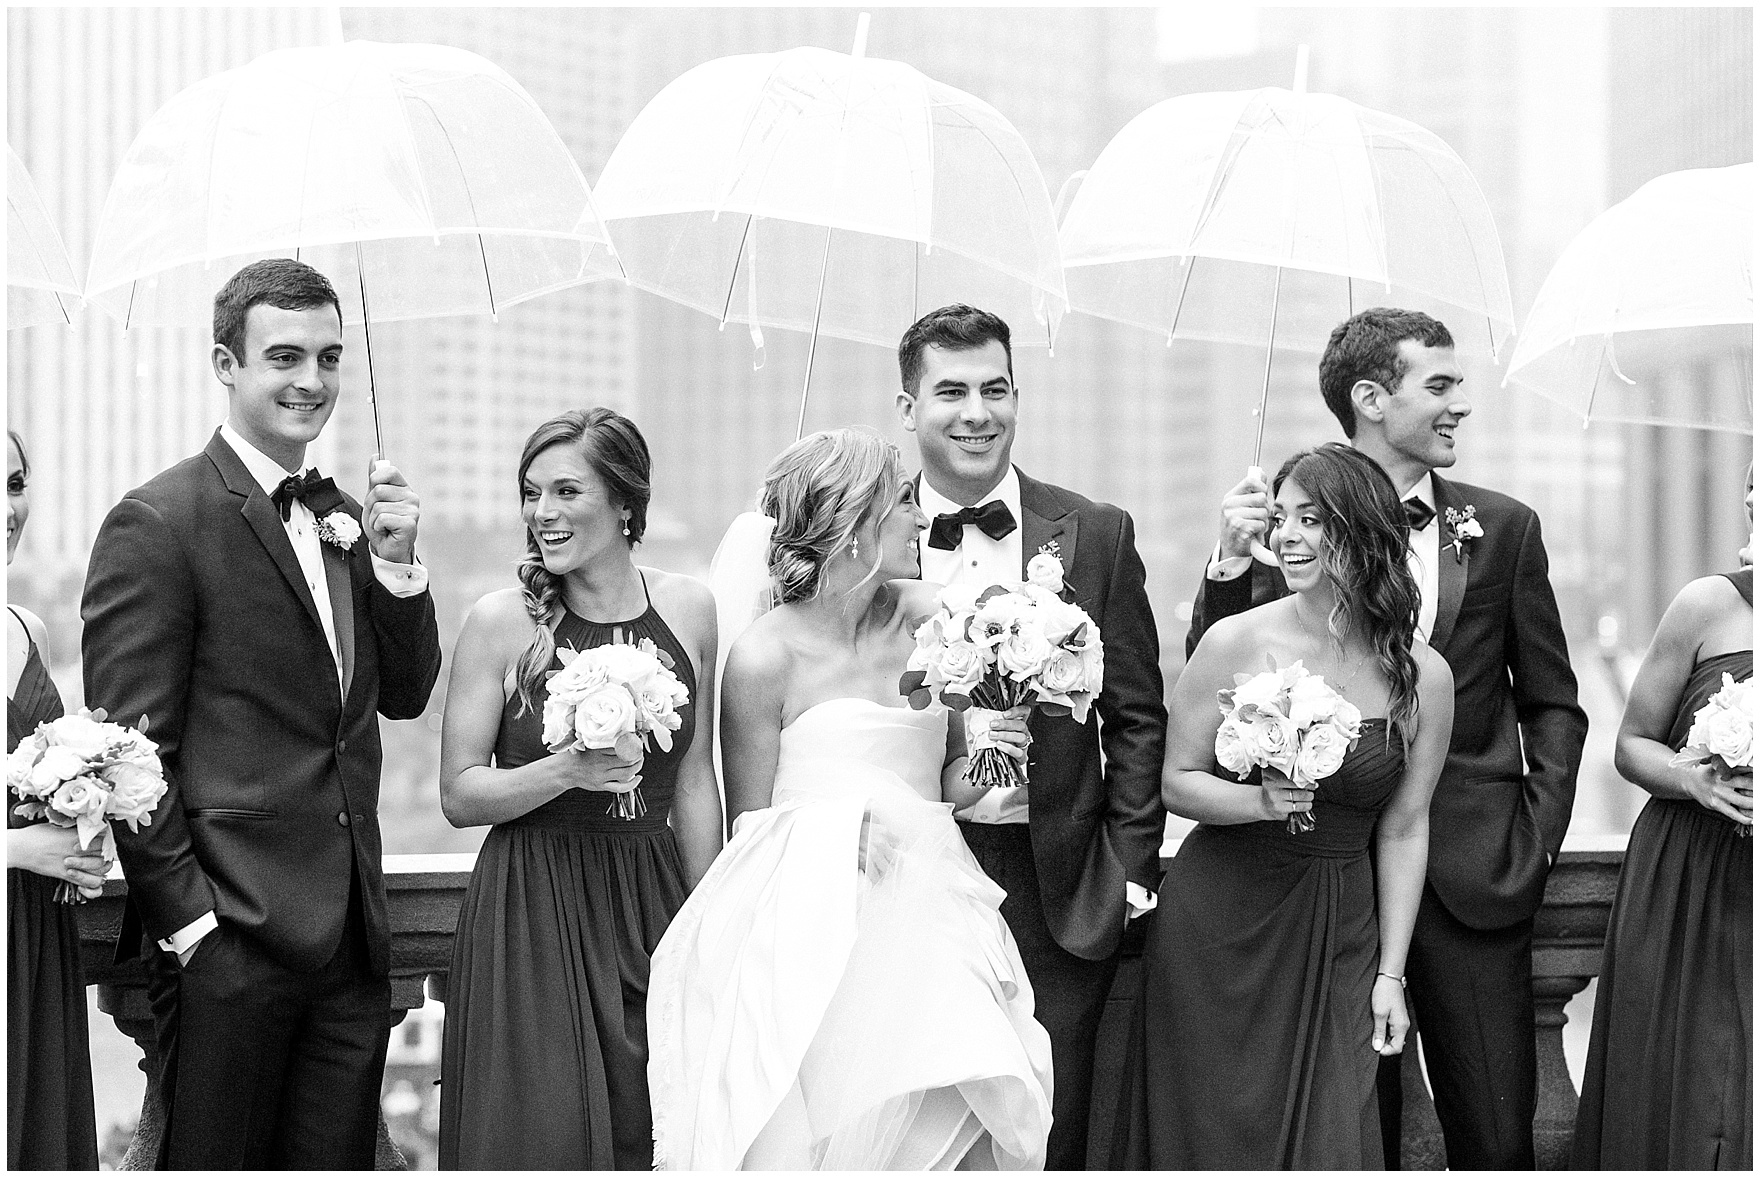 The bridal party laughs as they are photographed during a St. Clement Germania Place Chicago wedding.